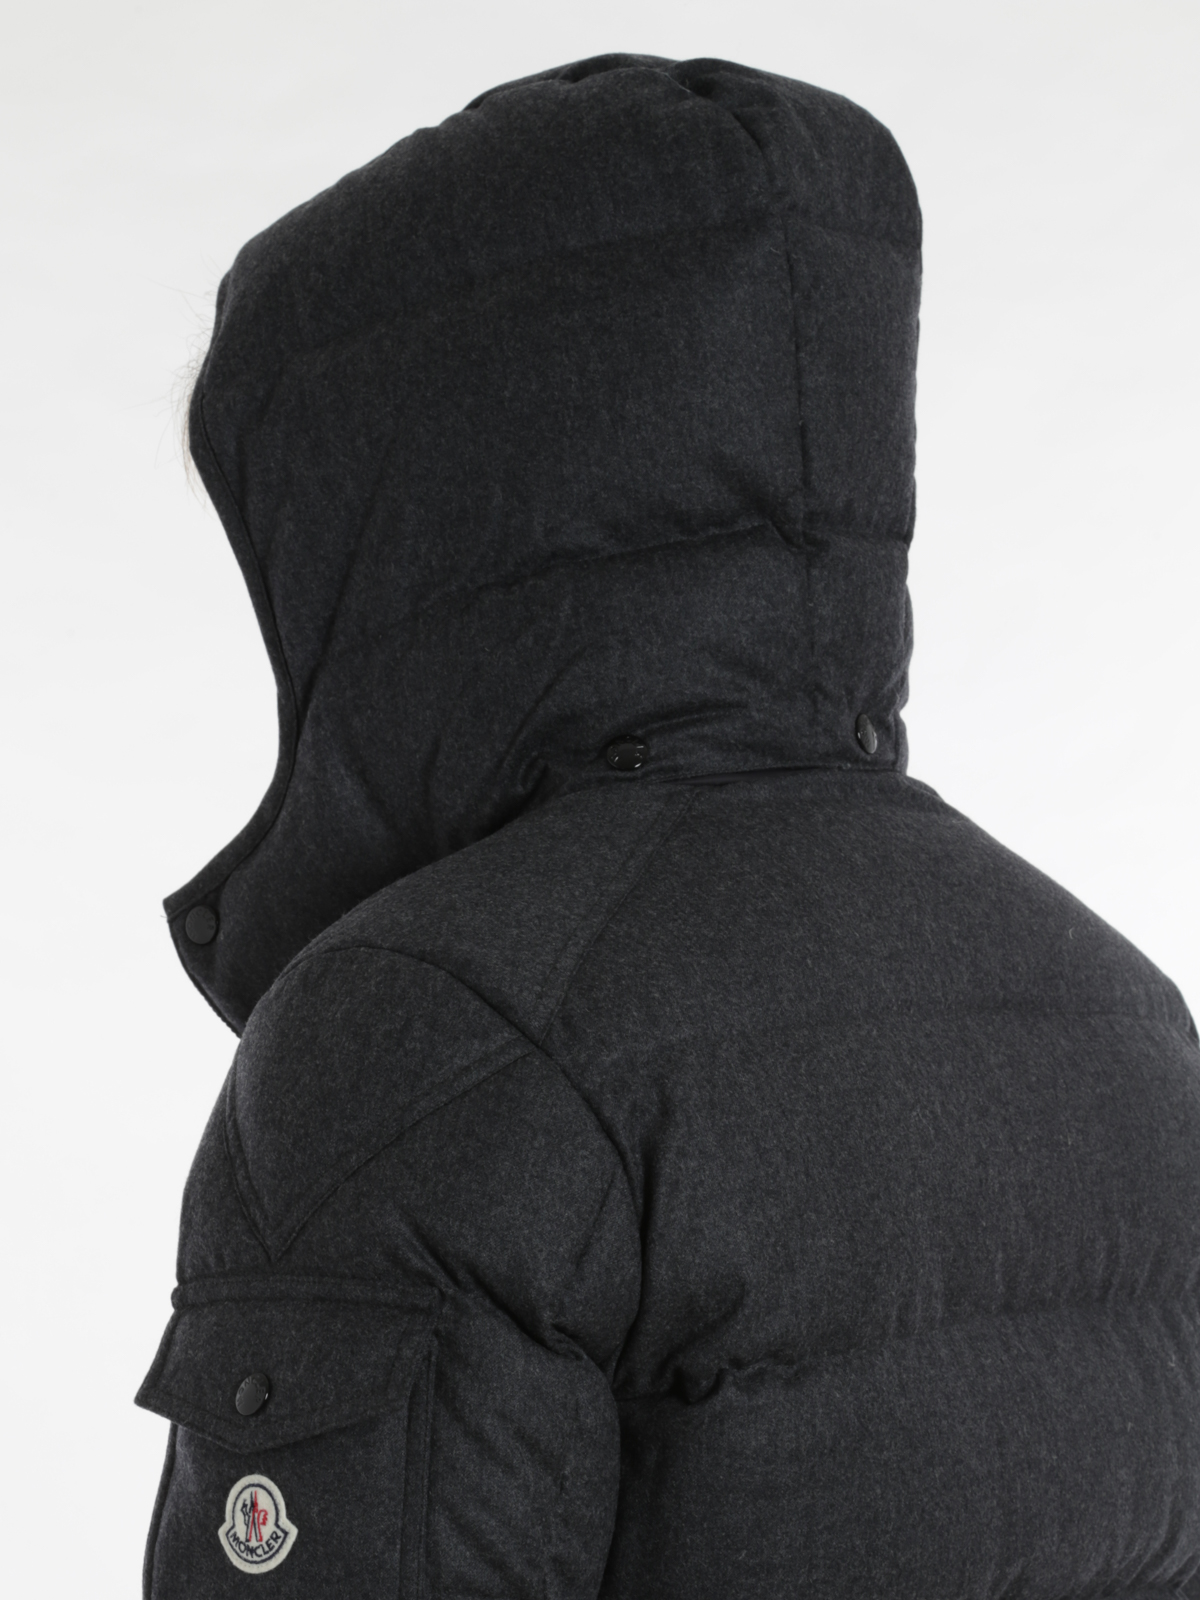 3f8bd34a7ee Moncler - Montgenevre down jacket - padded jackets - A2 091 4033805 ...